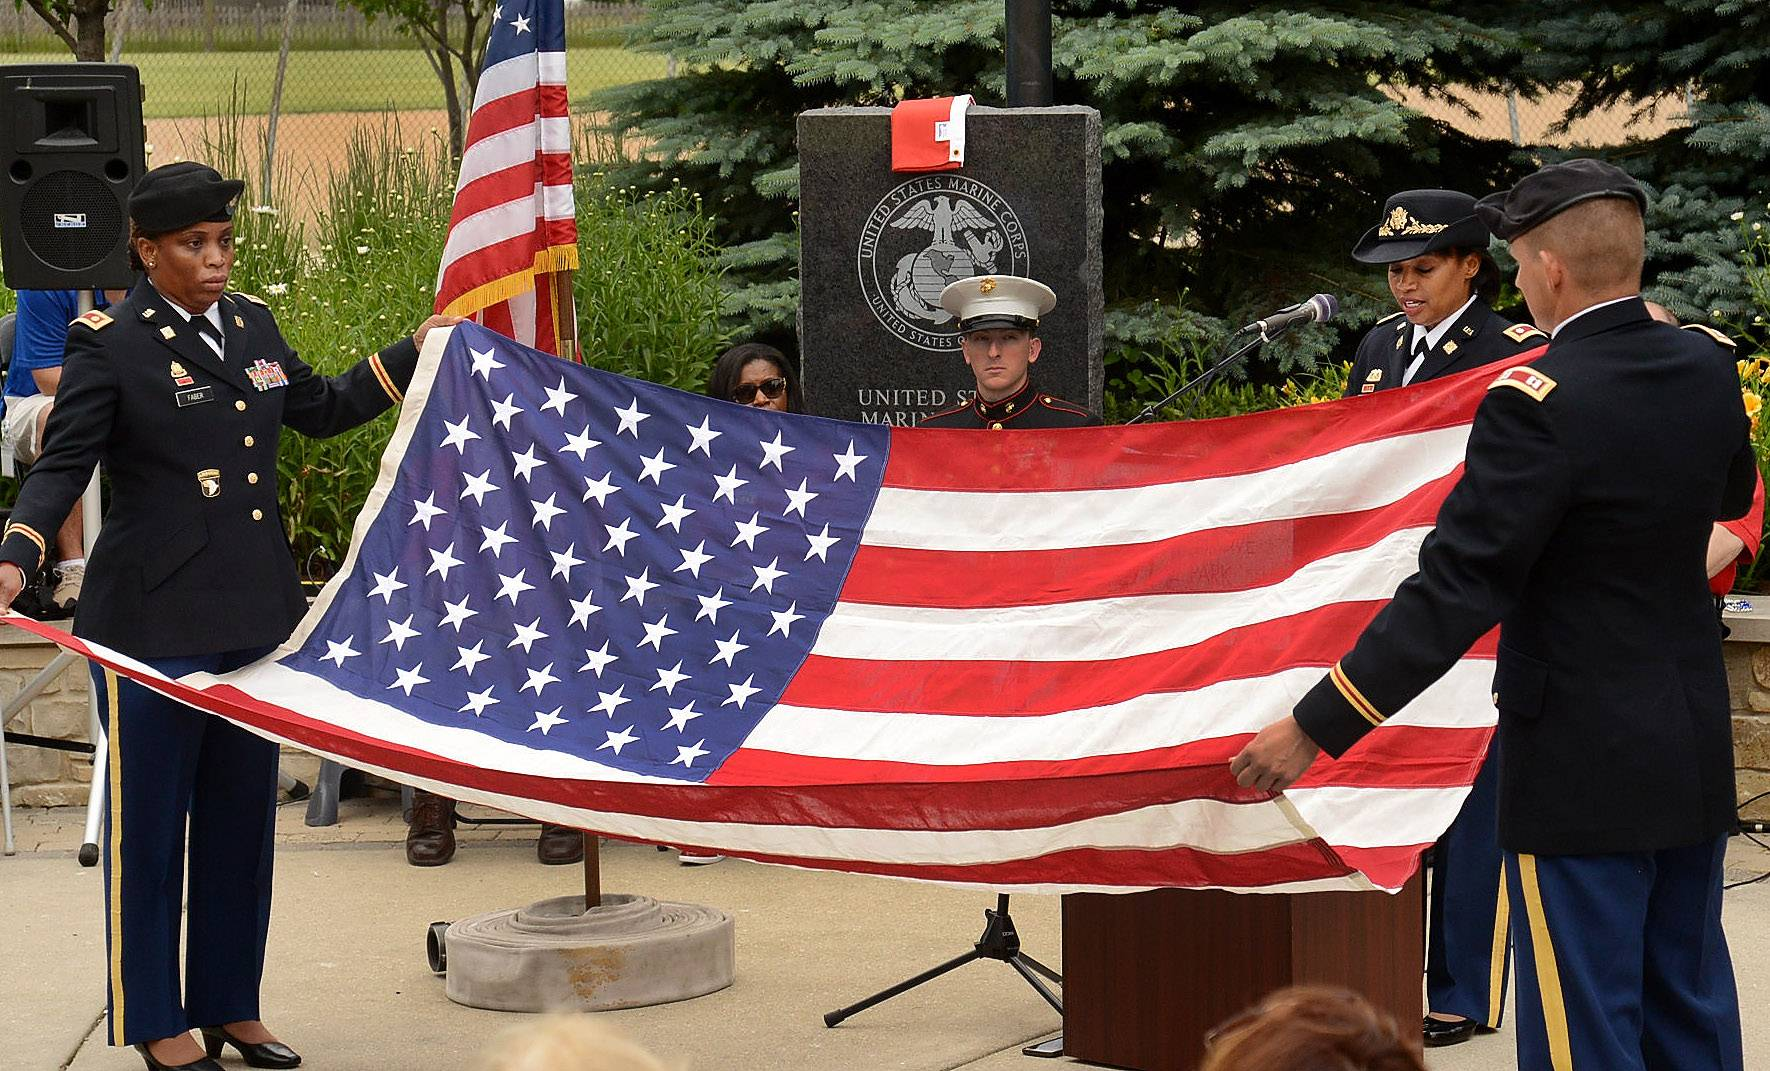 Major Erna M. Faber, left, and reservist Jason Smigelski, both from the 85th Army Reserve Support Command in Arlington Heights flank the American flag on Tuesday evening as Lt. Col. Priscilla Van Zanten speaks about the meaning of the flag during Buffalo Grove Park District's annual Flag Day celebration at Veterans Park.